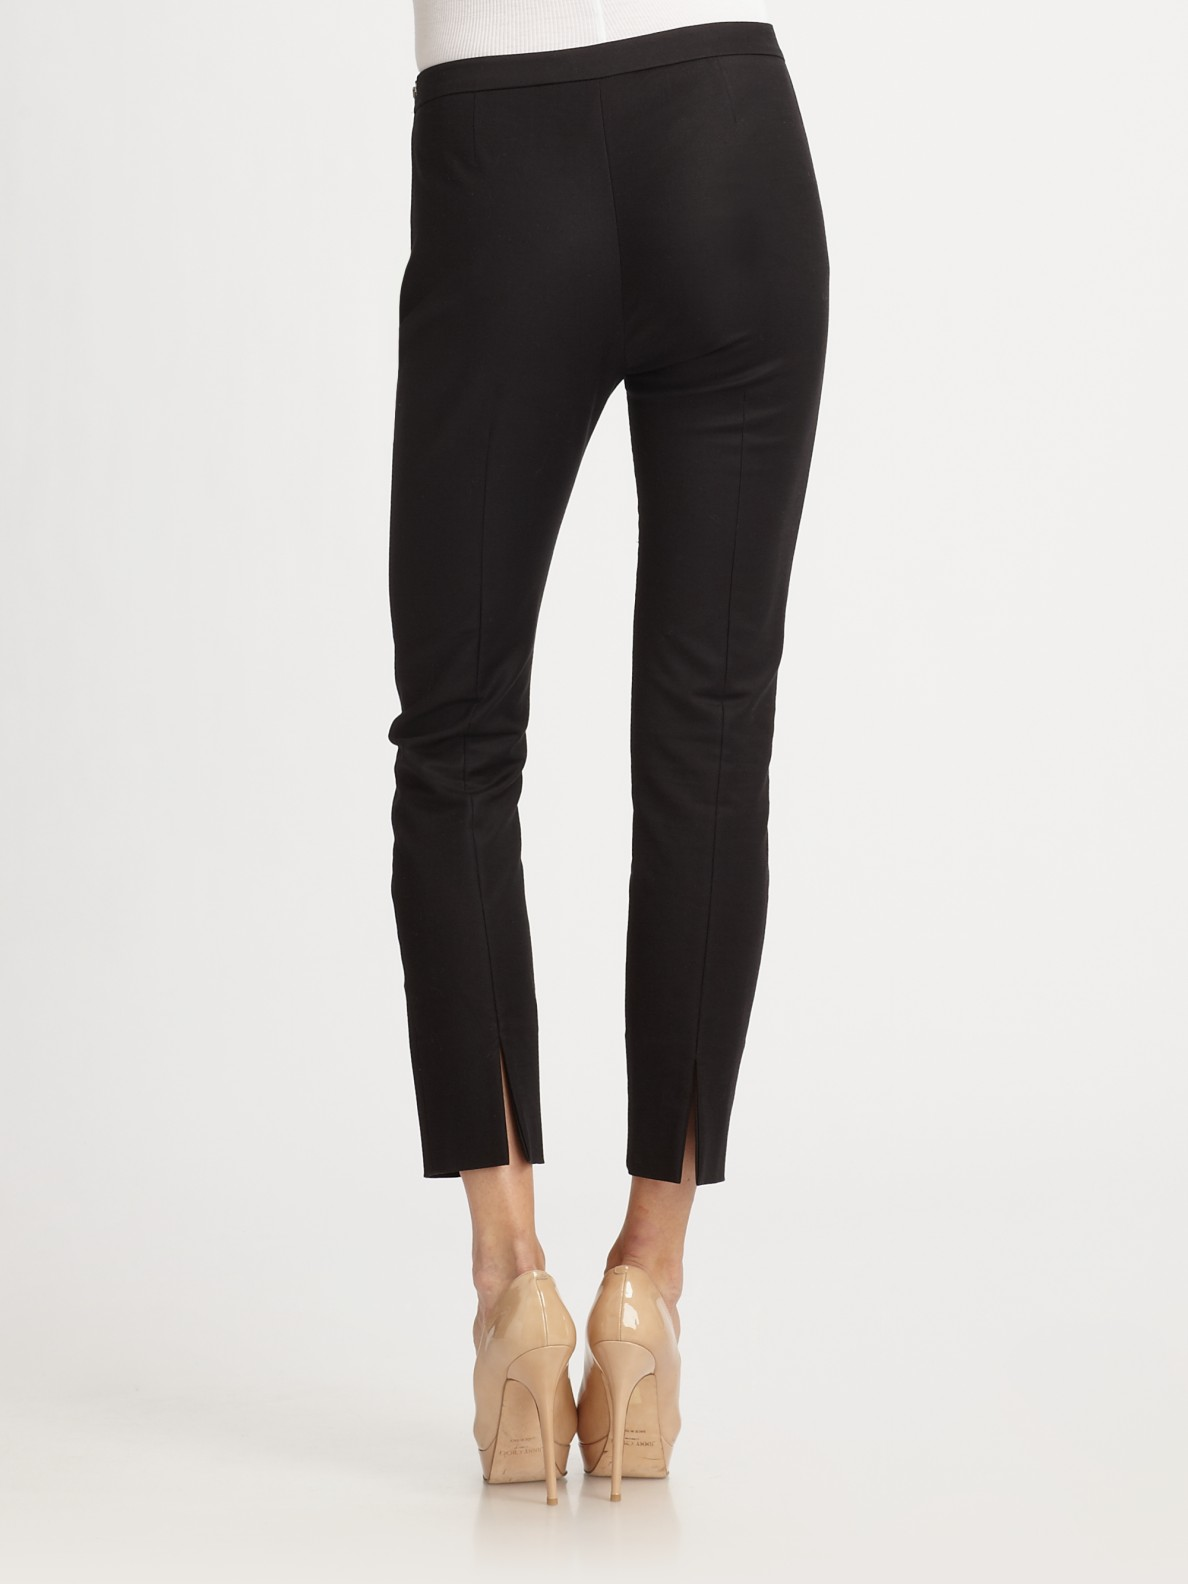 Acne studios Best Cotton Stretch Pants in Black | Lyst